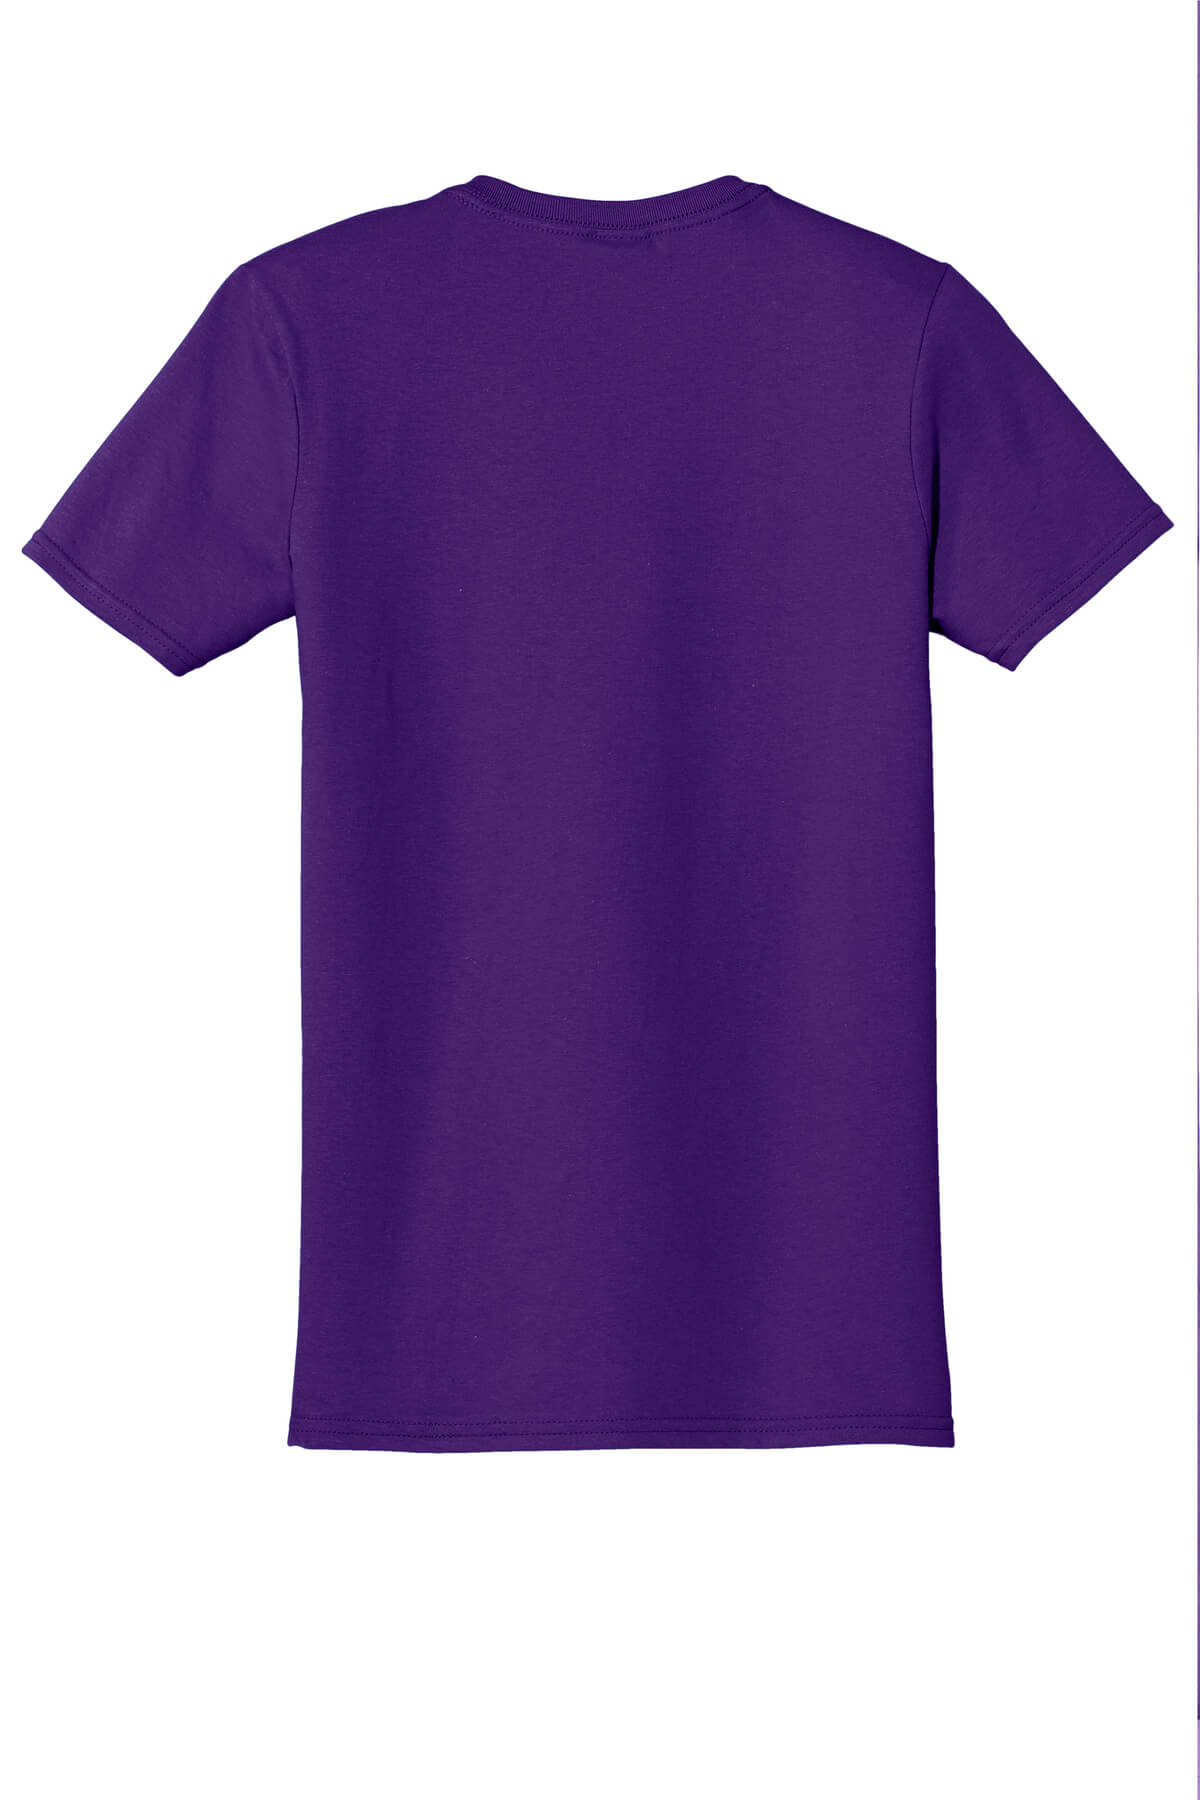 Purple T-Shirt Back